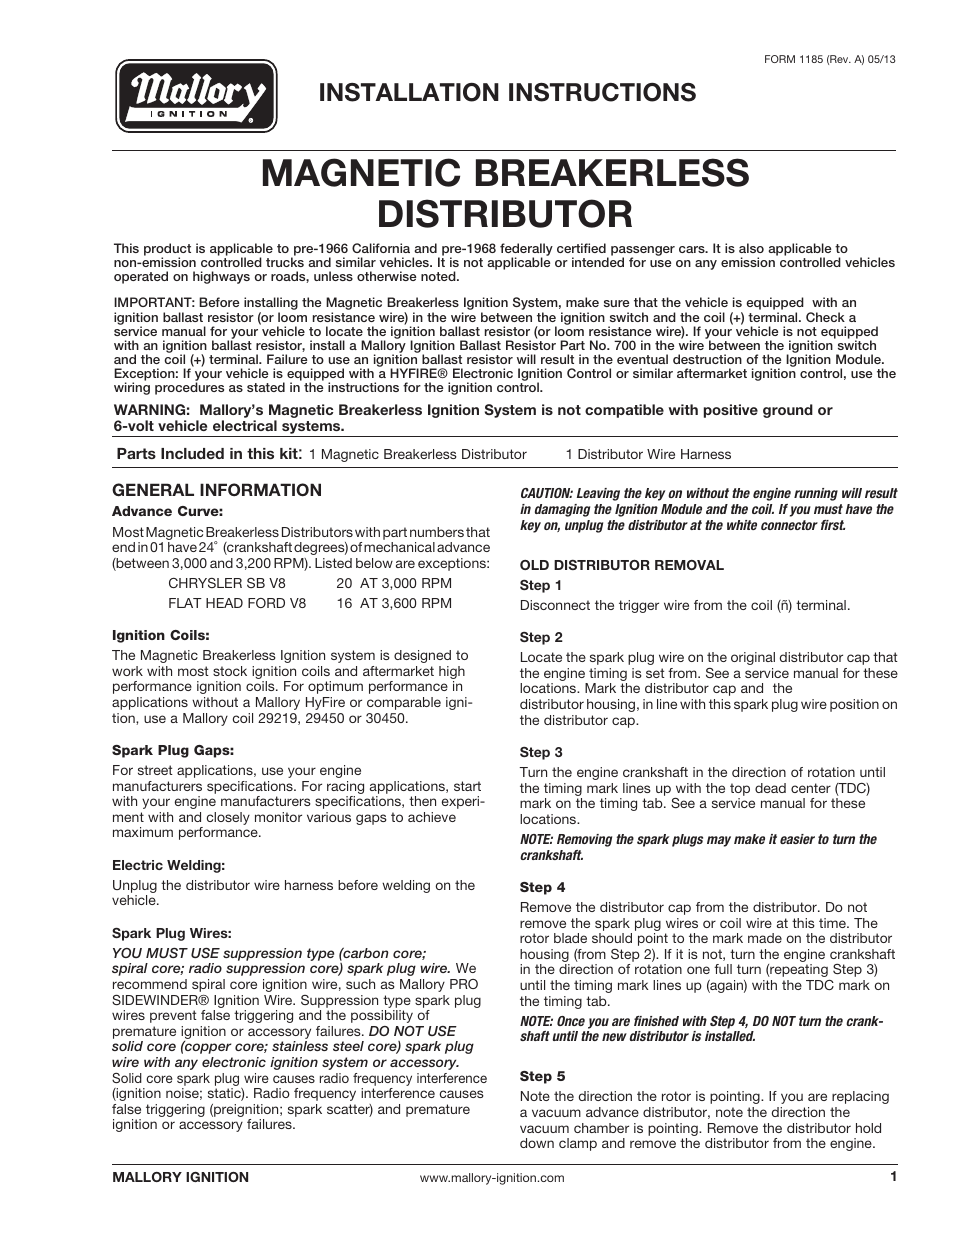 Mallory Magnetic Breakerless Wiring Diagram